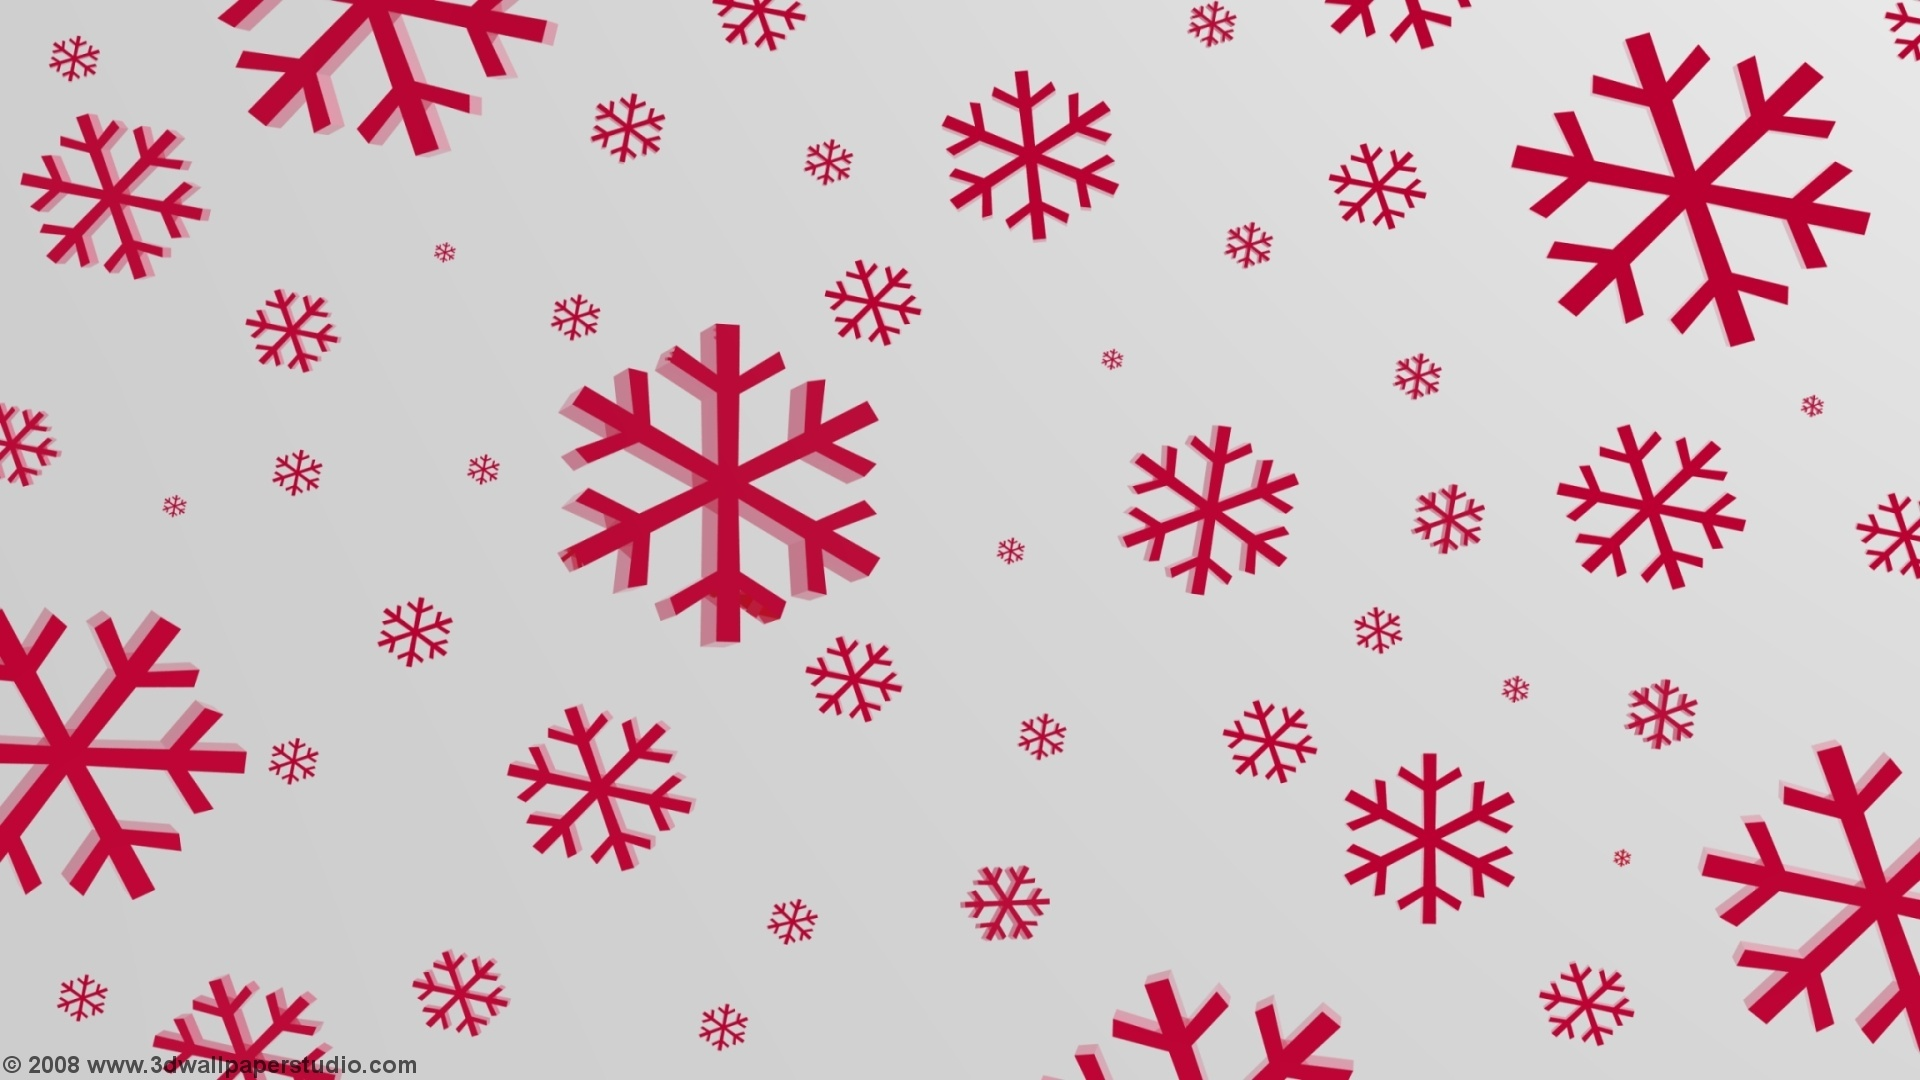 Snowflake Wallpaper 1920×1080